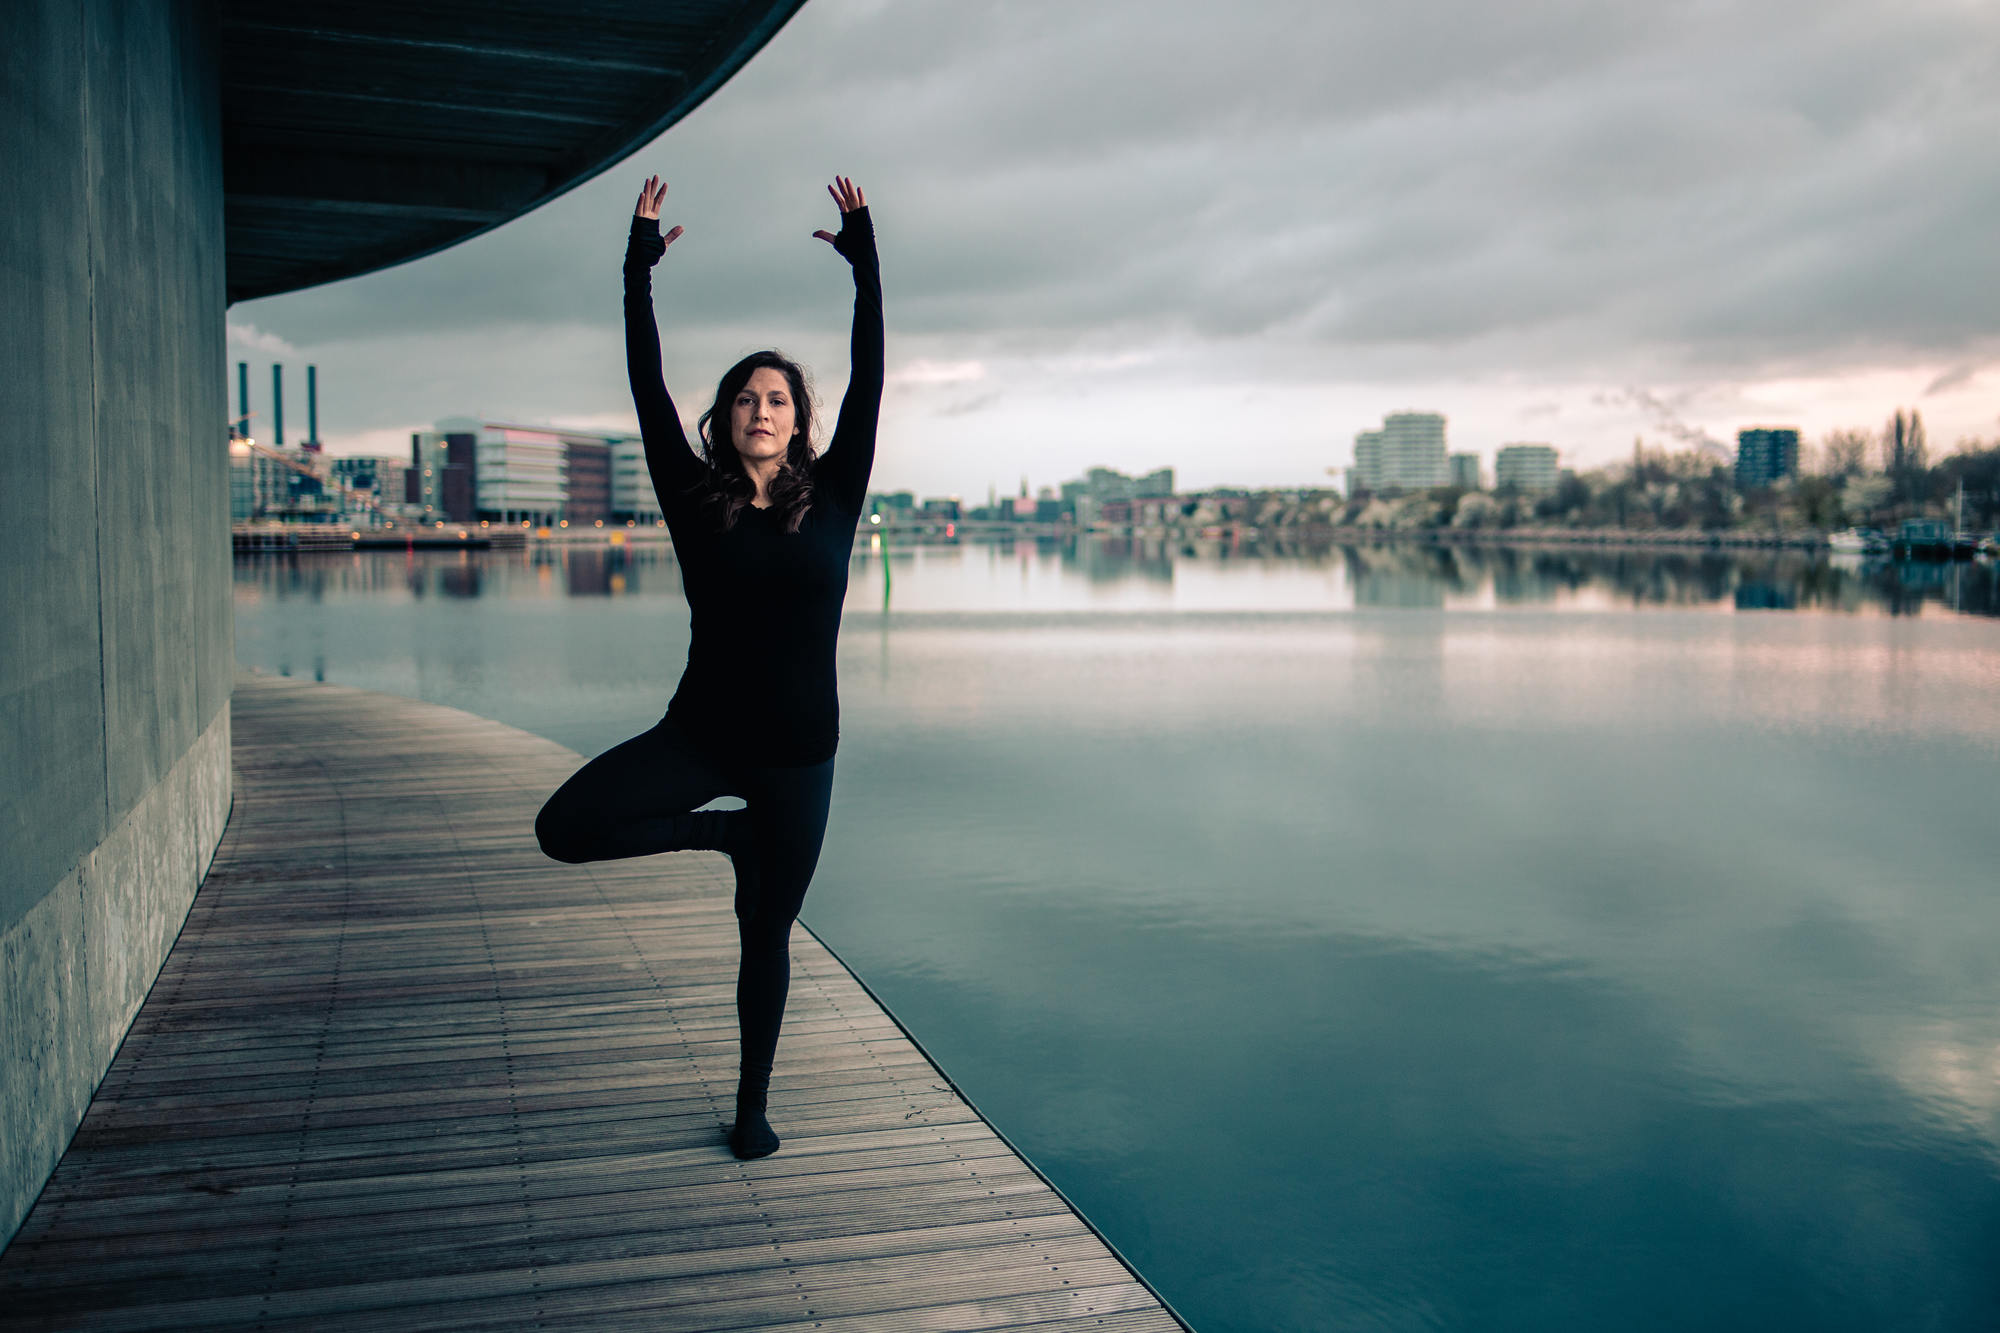 urban-yoga-photoshoot-copenhagen-silhouettes-poses-02